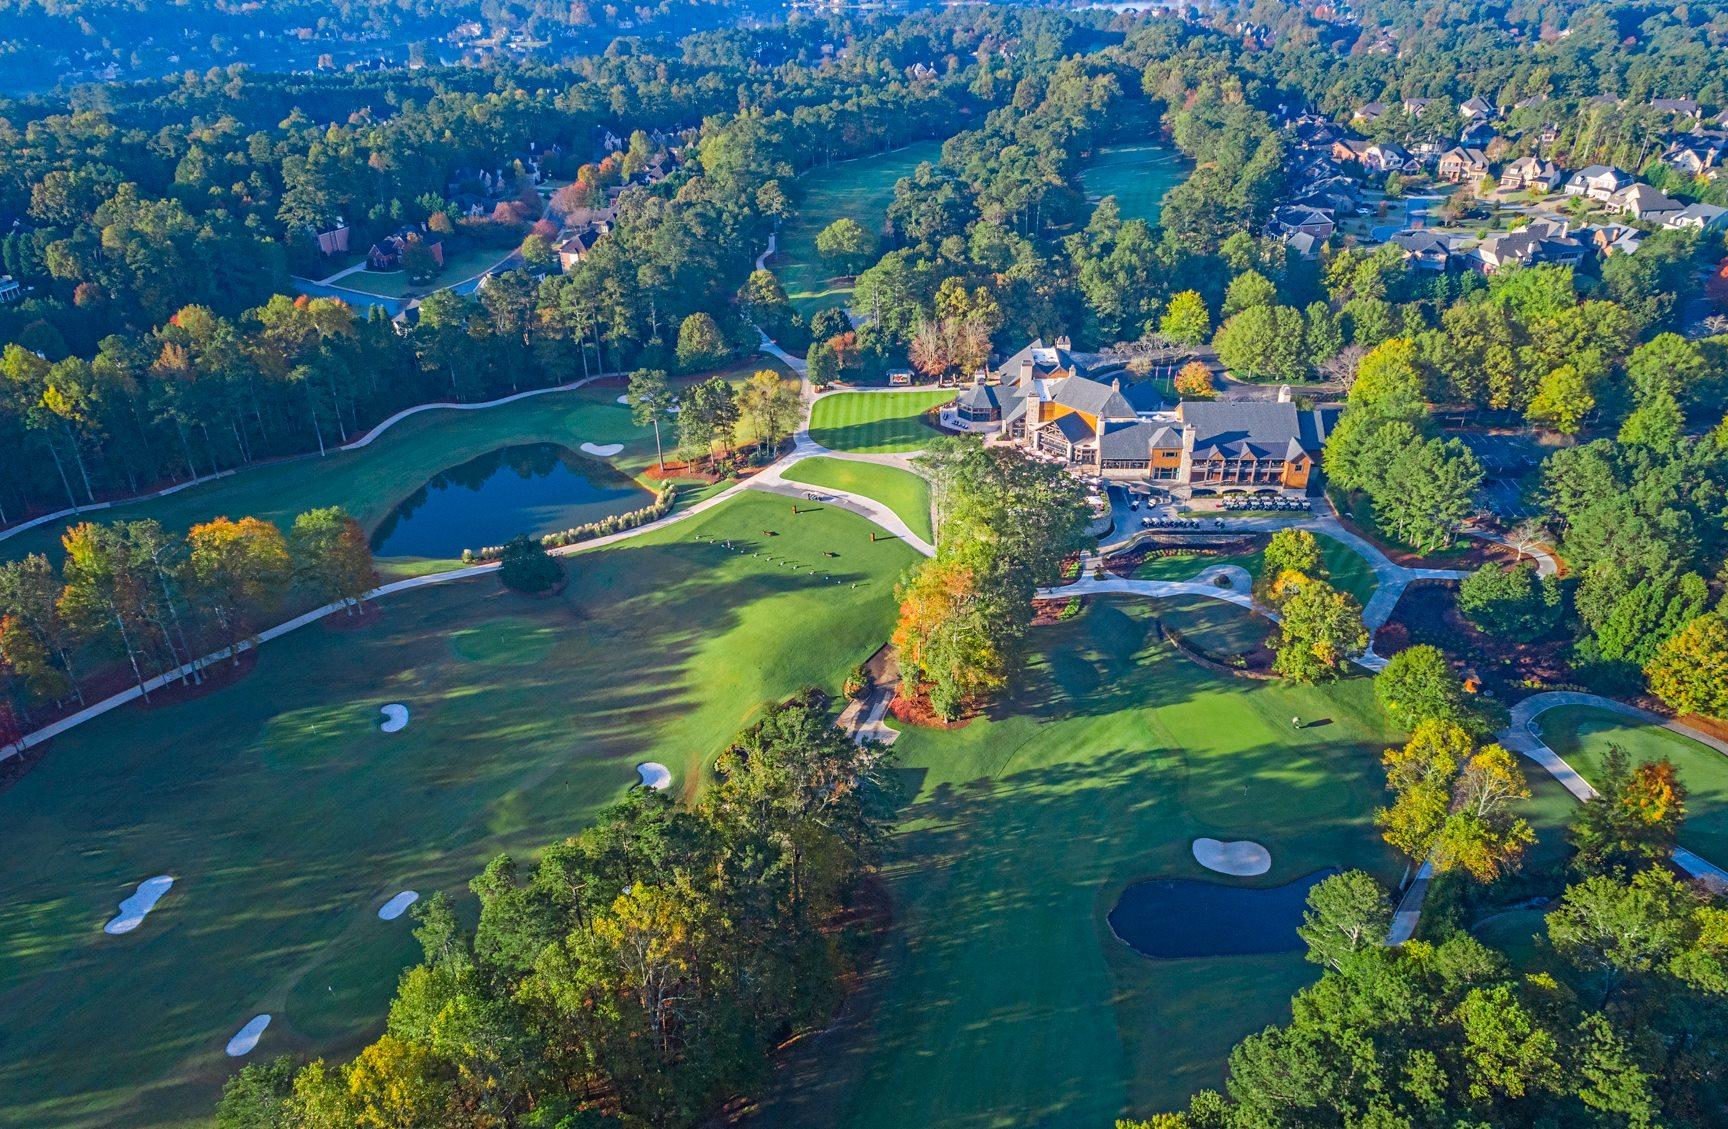 The Golf Club of Georgia